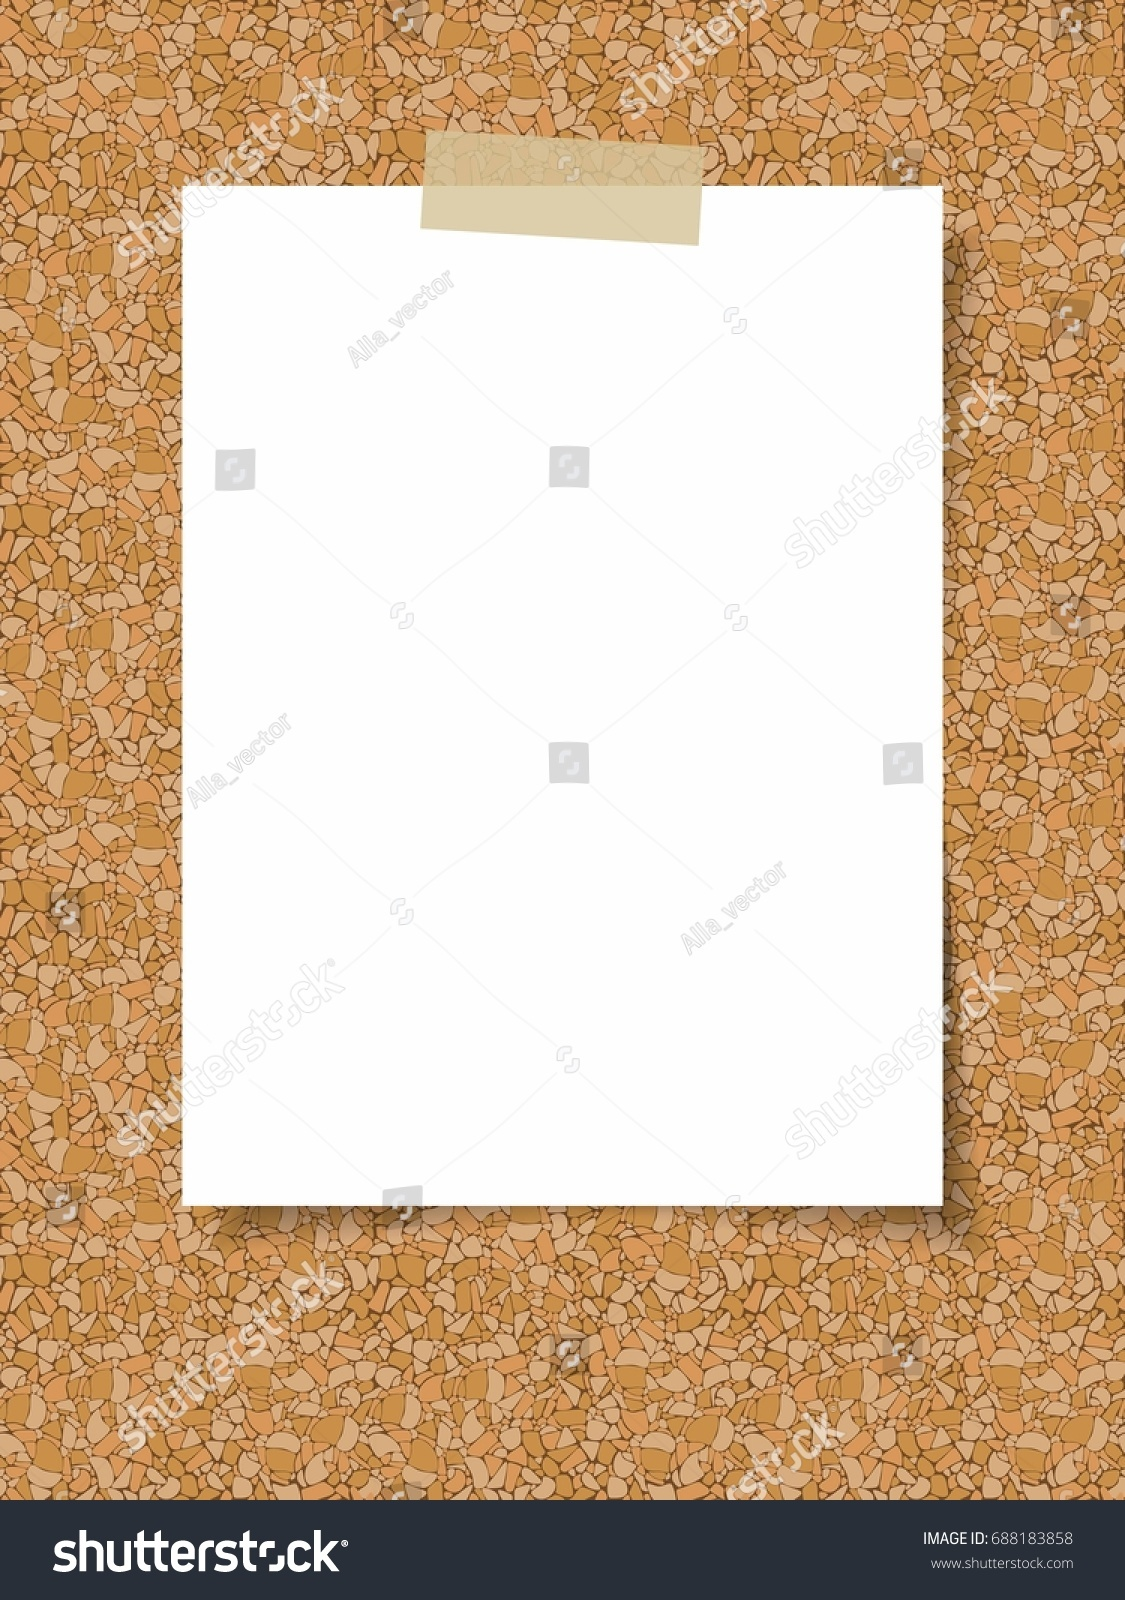 Clean White Sheet Paper On Background Stock Vector (Royalty Free ...